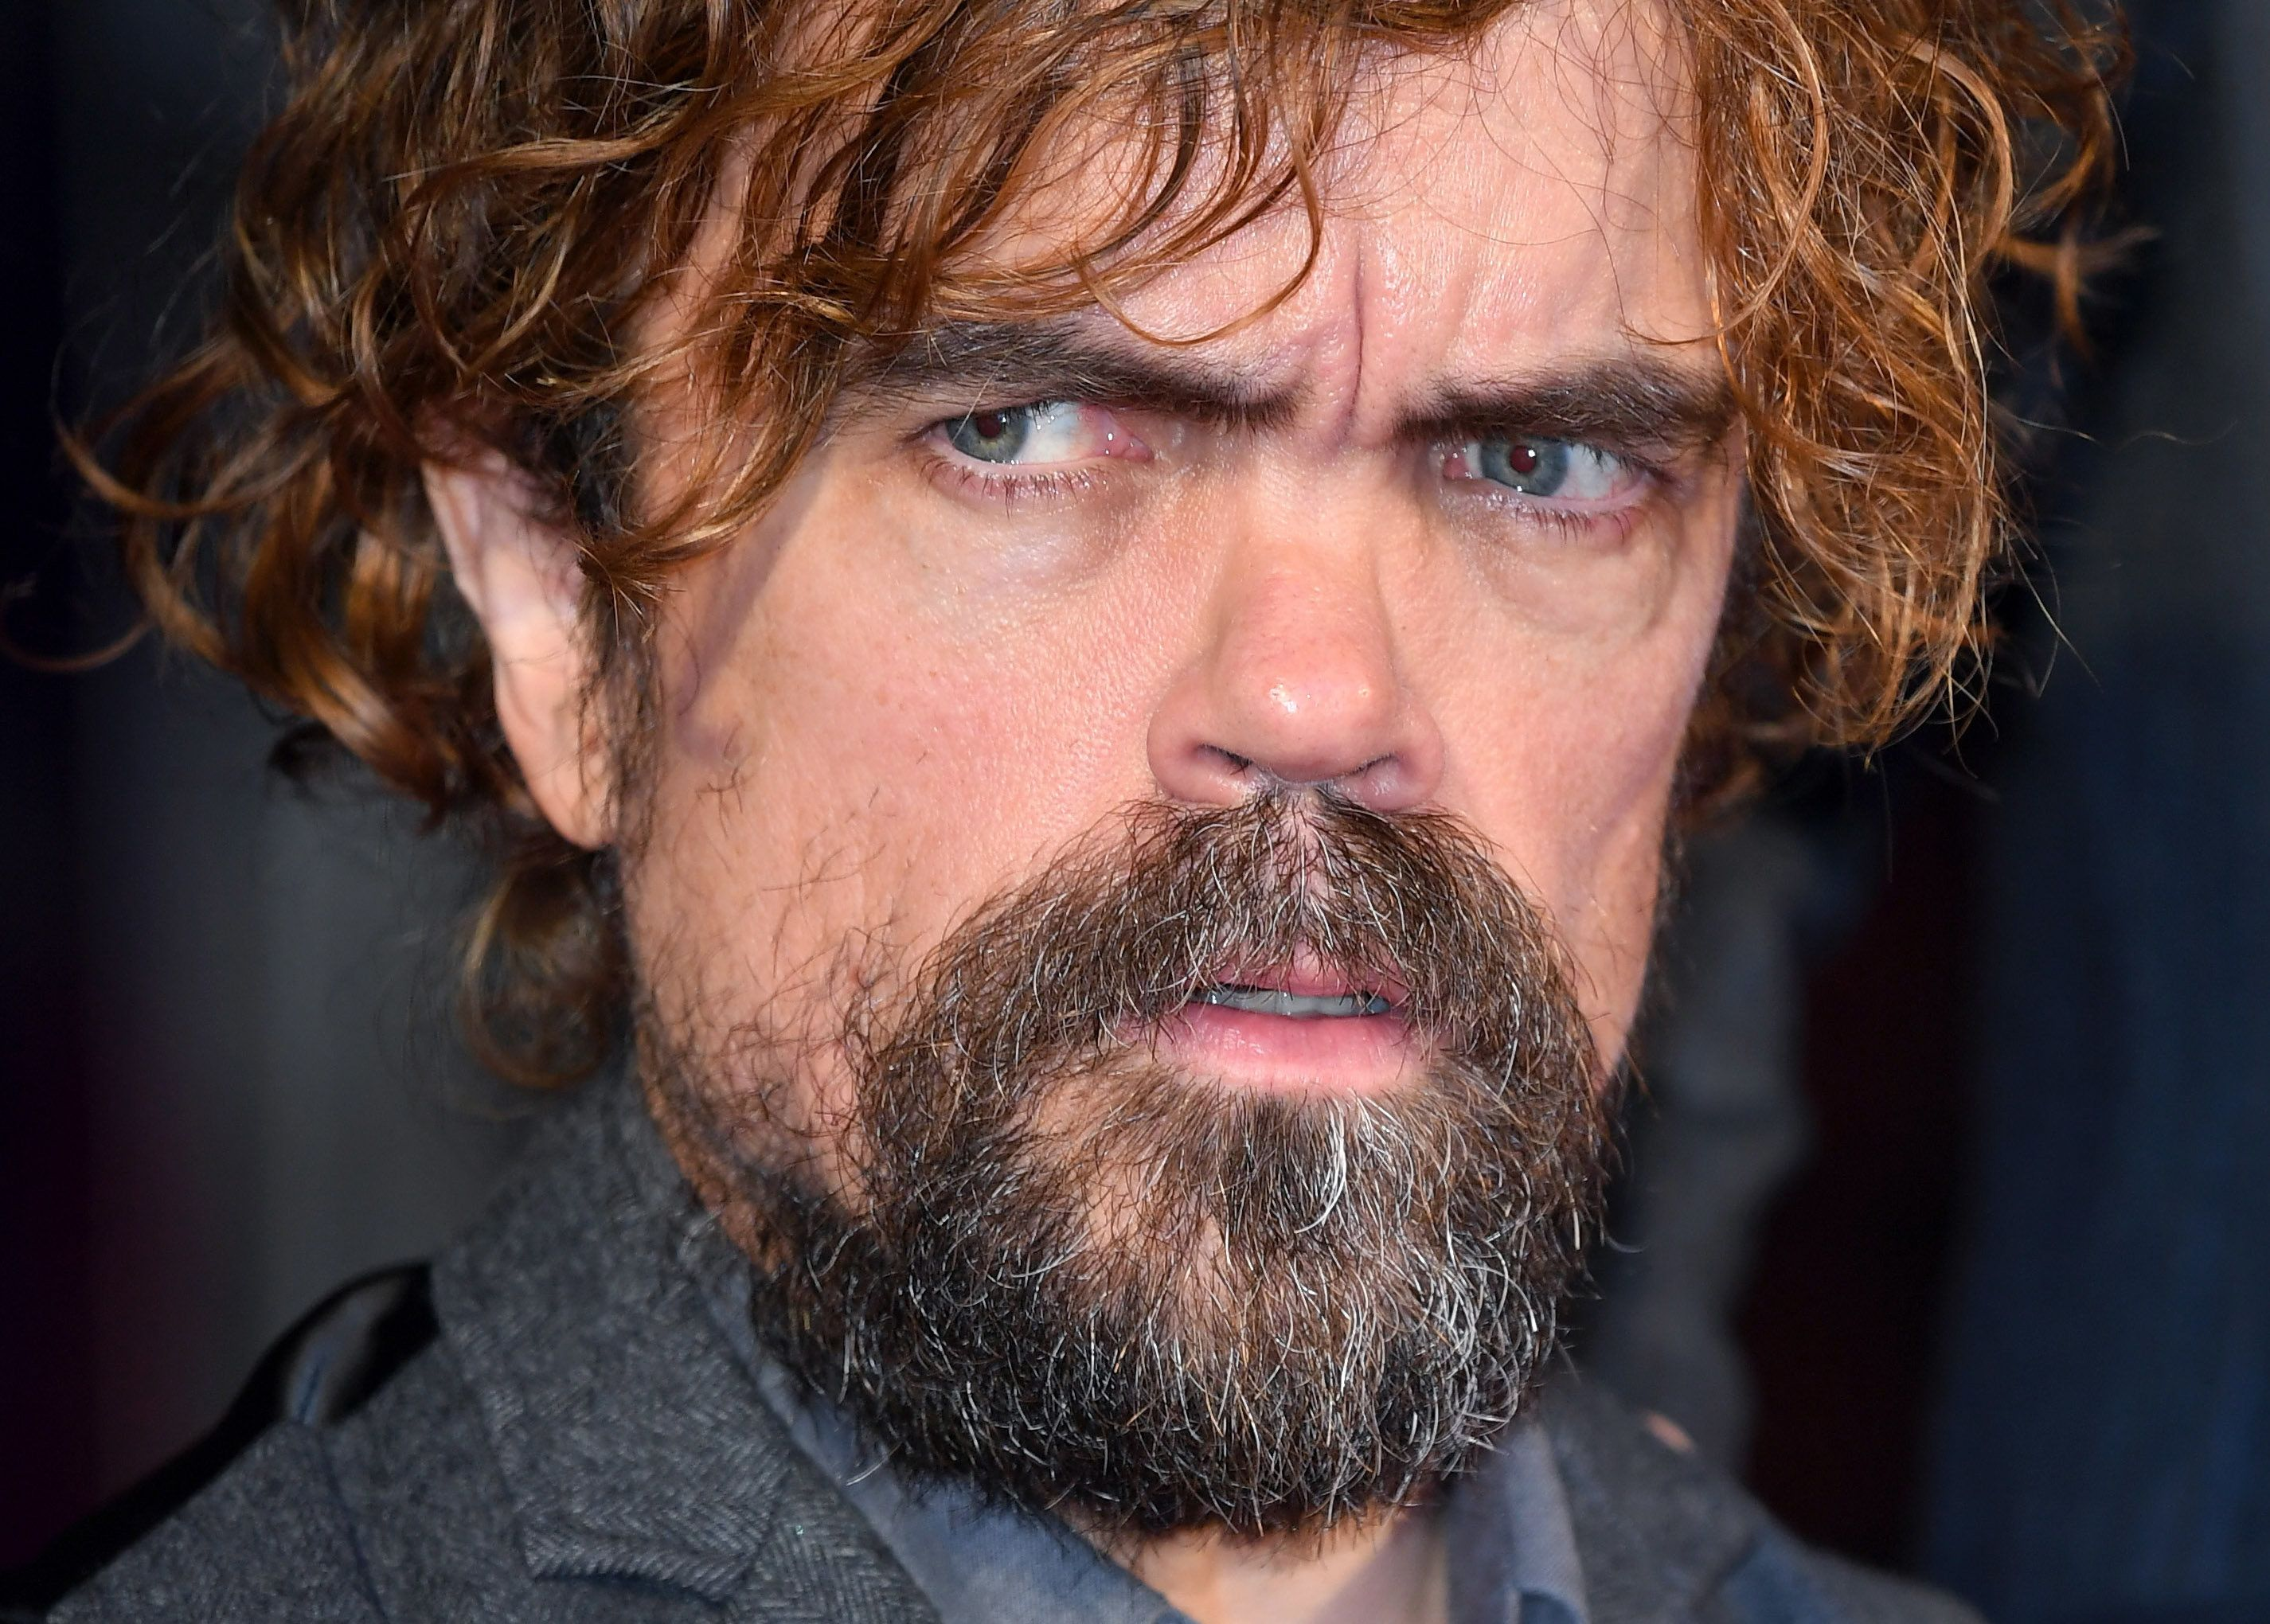 Peter Dinklage Is Ready For 'Game Of Thrones' To End